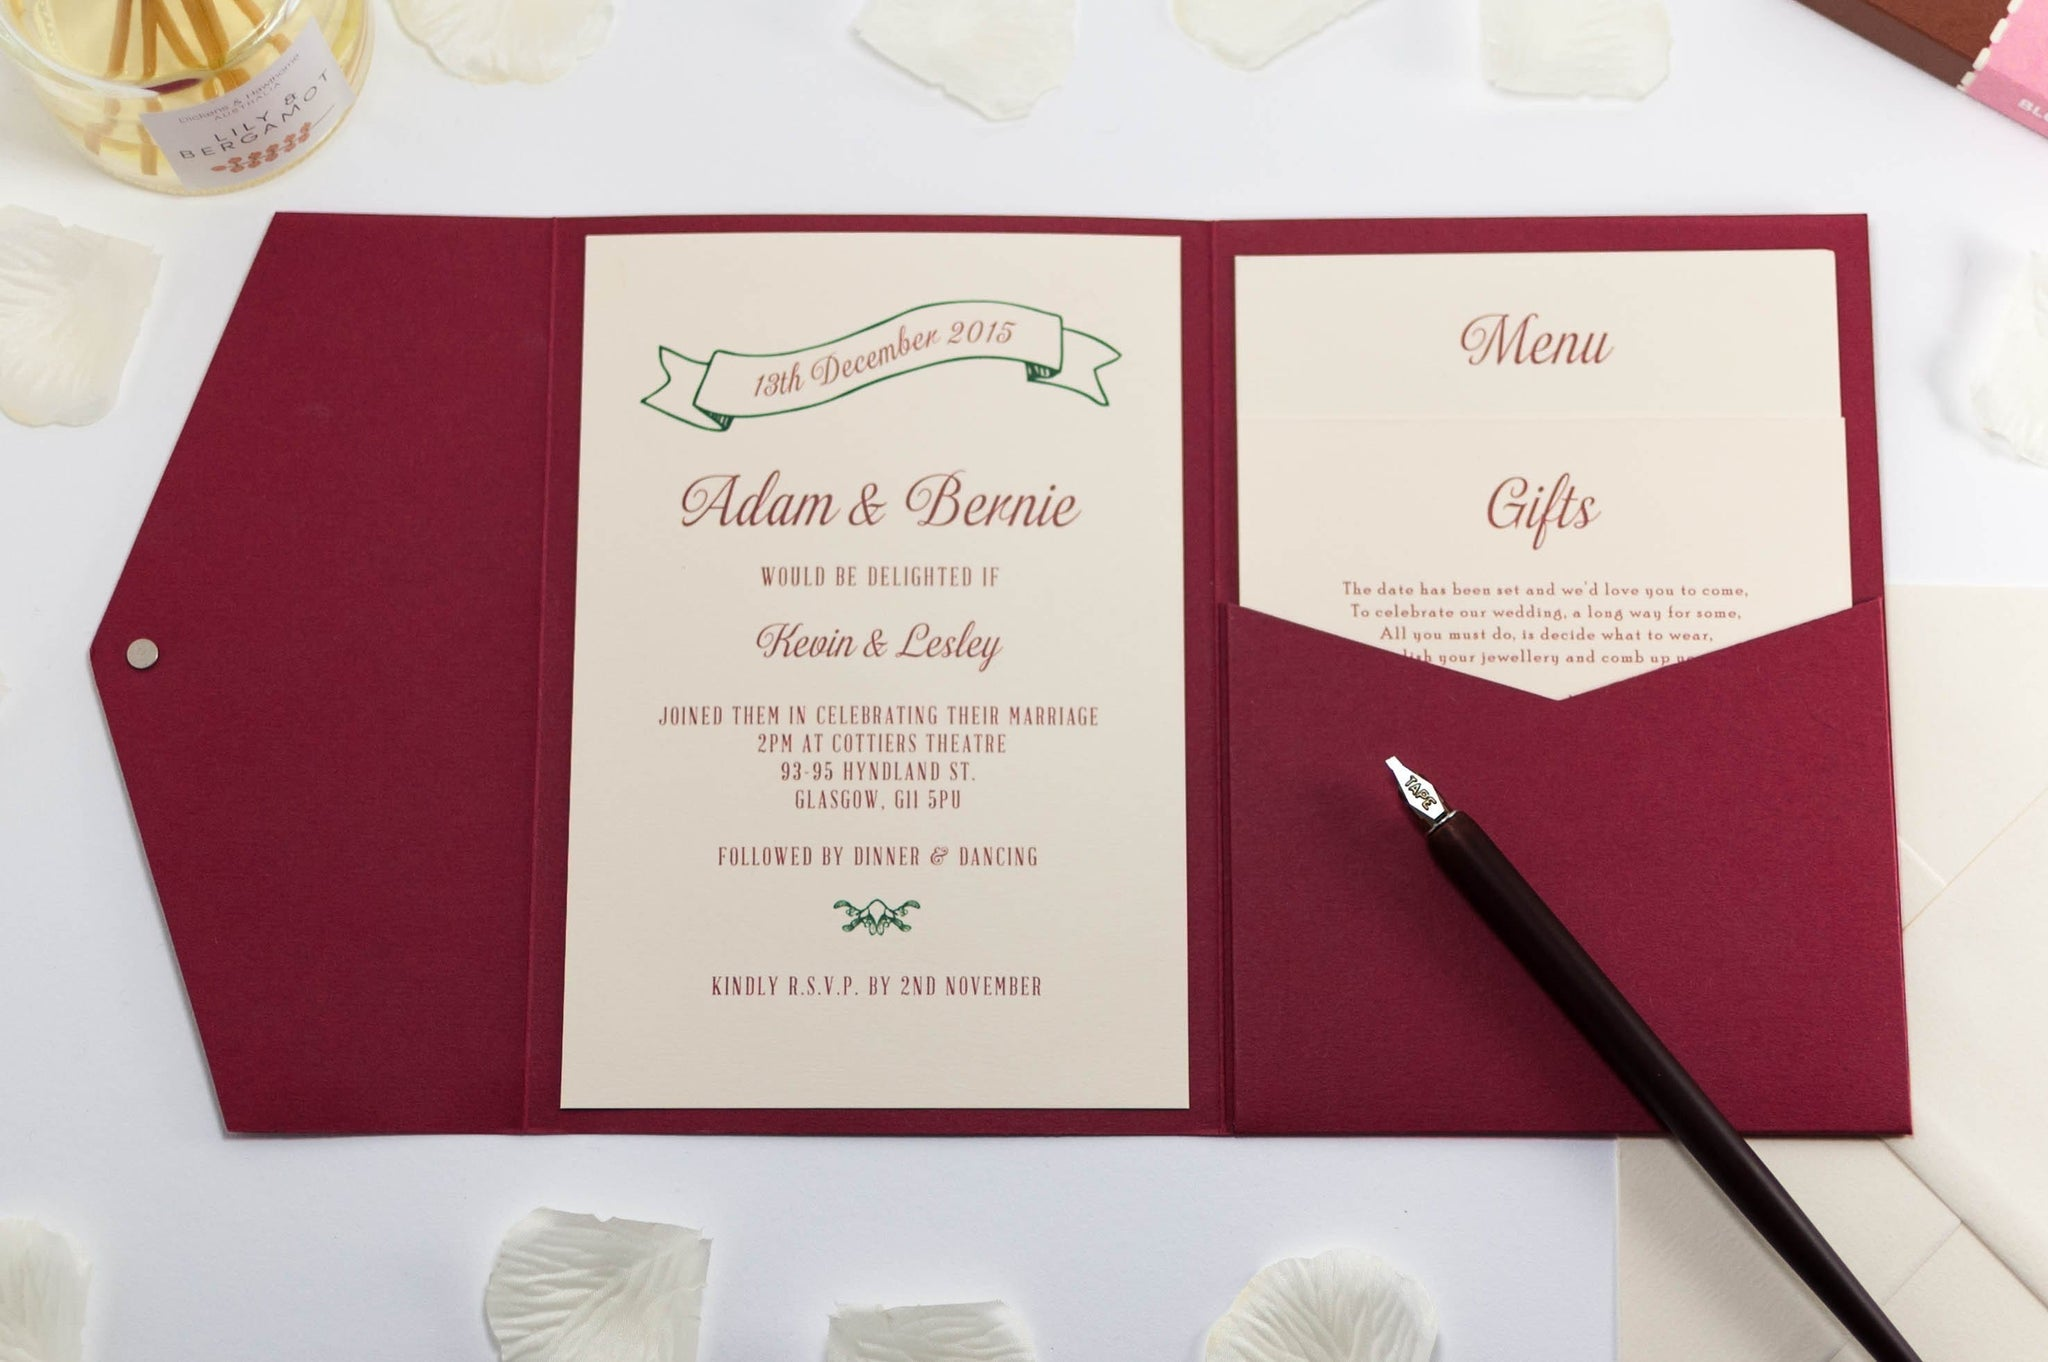 Wedding Invitation Samples | Wedding Card Samples | Com Bossa Page 3 ...